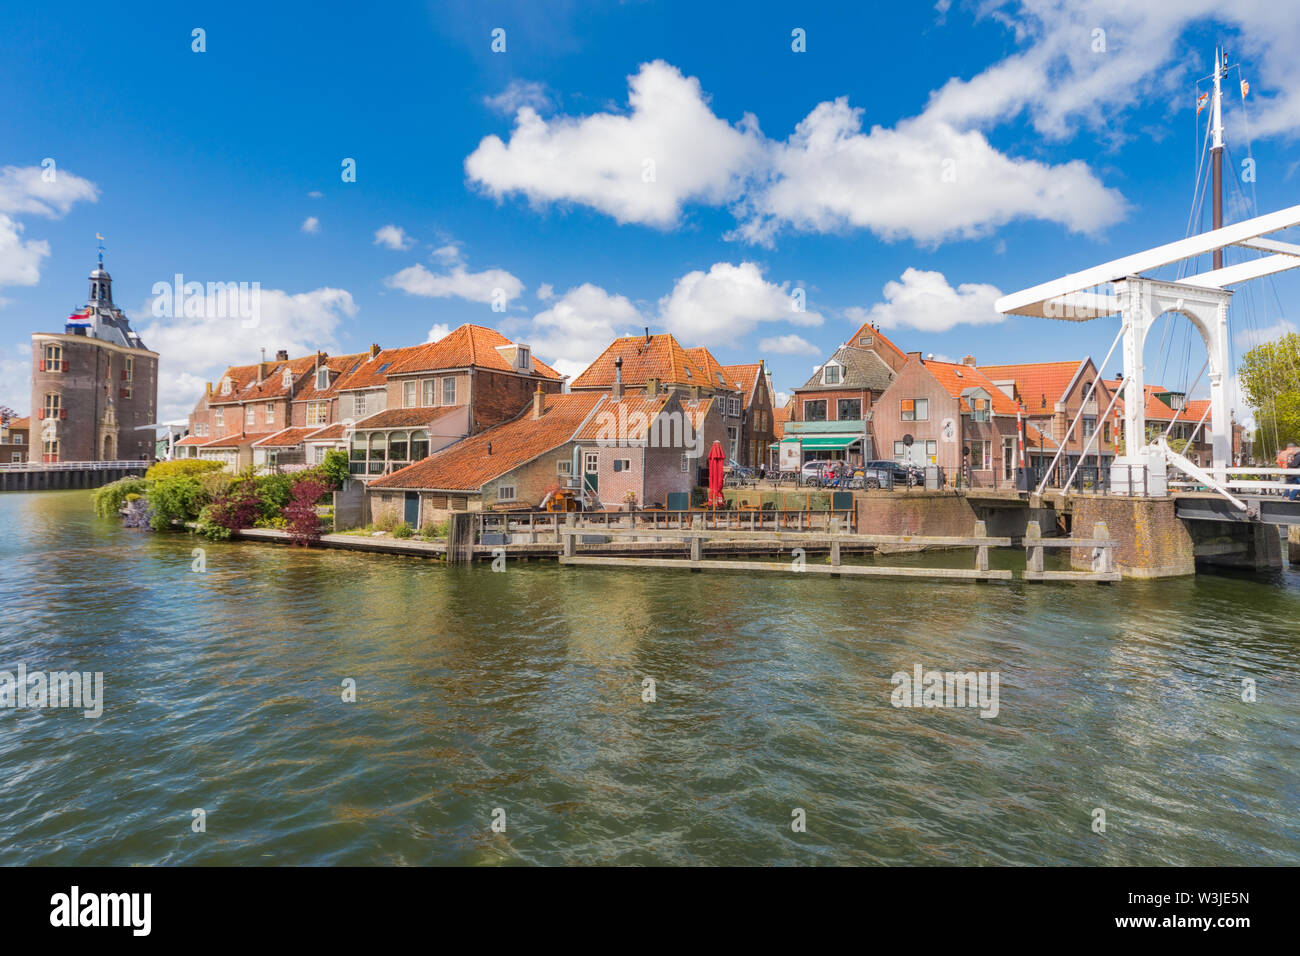 The center of Enkhuizen in the Netherlands with the old city gate - Drommedaris in the background. - Stock Image